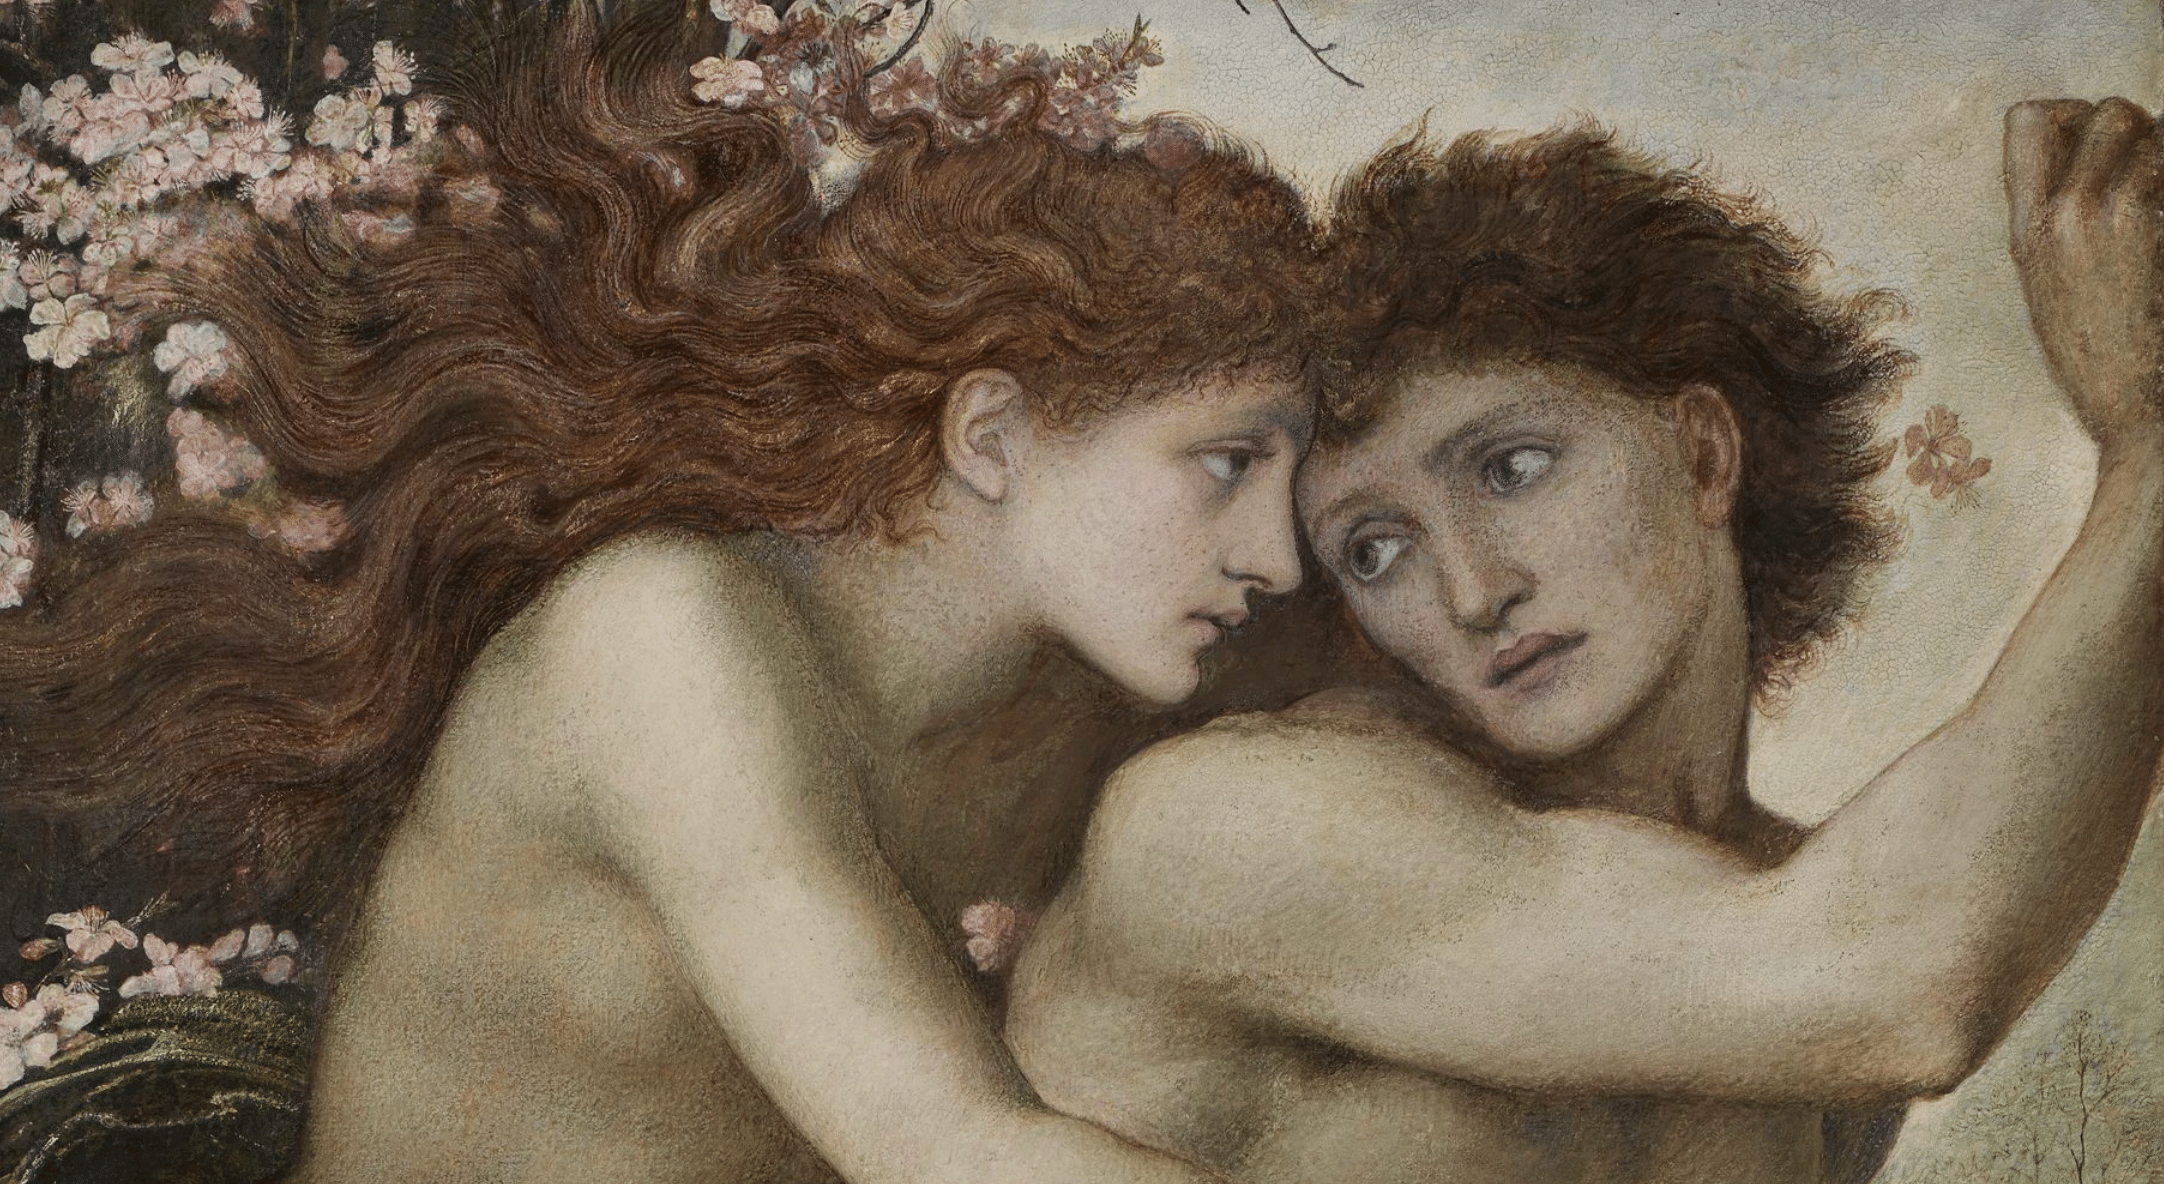 Painting of lovers looking at one another